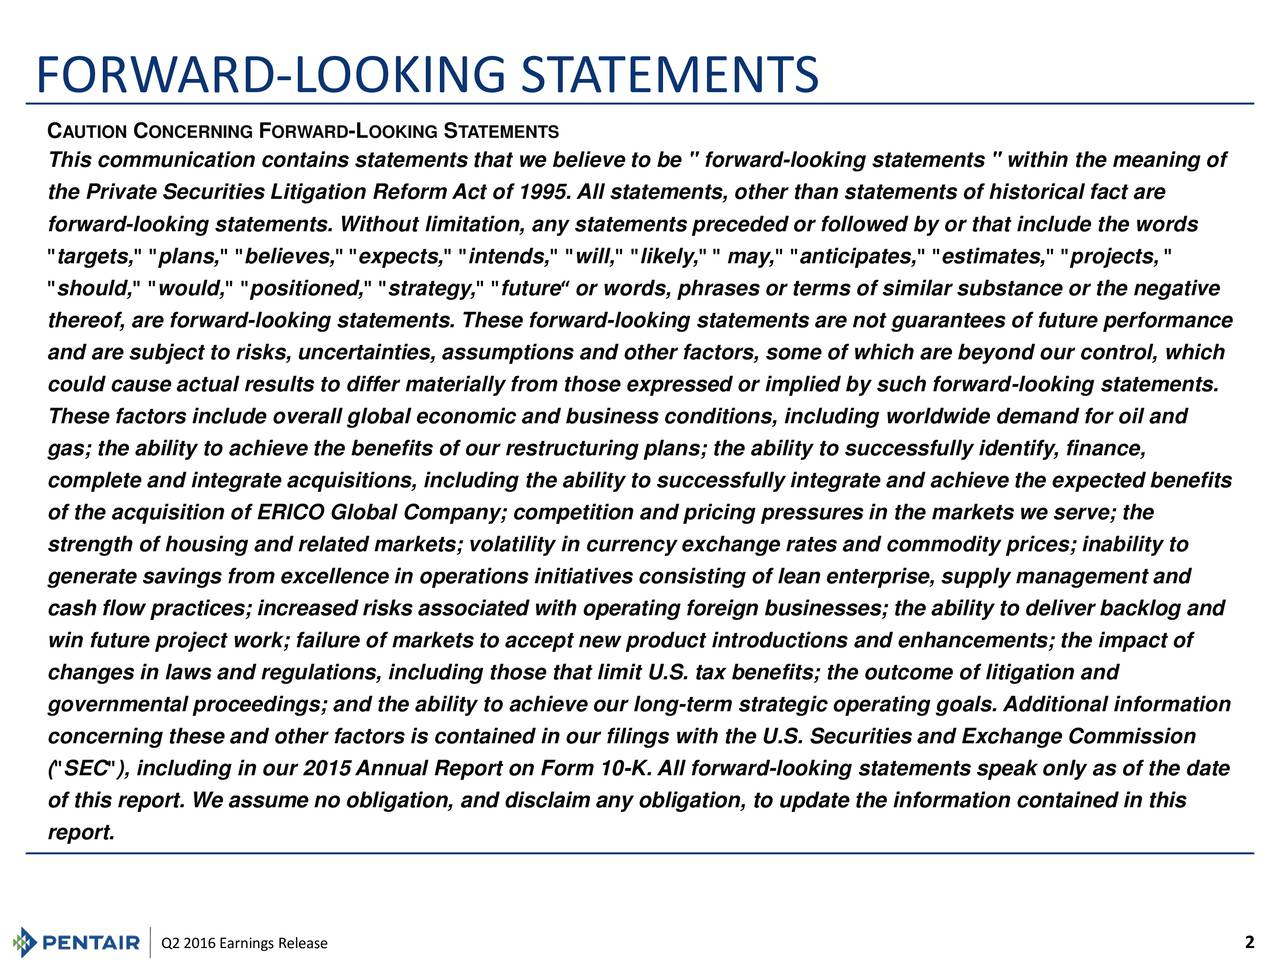 "C AUTIONCONCERNING FORWARD -LOOKING STATEMENTS This communication contains statements that we believe to be "" forward-looking statements "" within the meaning of the Private Securities Litigation Reform Act of 1995. All statements, other than statements of historical fact are forward-looking statements. Without limitation, any statements preceded or followed by or that include the words ""targets,"" ""plans,"" ""believes,"" ""expects,"" ""intends,"" ""will,"" ""likely,"" "" may,"" ""anticipates,"" ""estimates,"" ""projects, "" ""should,"" ""would,"" ""positioned,"" ""strategy,"" ""future or words, phrases or terms of similar substance or the negative thereof, are forward-looking statements. These forward-looking statements are not guarantees of future performance and are subject to risks, uncertainties, assumptions and other factors, some of which are beyond our control, which could cause actual results to differ materially from those expressed or implied by such forward-looking statements. These factors include overall global economic and business conditions, including worldwide demand for oil and gas; the ability to achieve the benefits of our restructuring plans; the ability to successfully identify, finance, complete and integrate acquisitions, including the ability to successfully integrate and achieve the expected benefits of the acquisition of ERICO Global Company; competition and pricing pressures in the markets we serve; the strength of housing and related markets; volatility in currency exchange rates and commodity prices; inability to generate savings from excellence in operations initiatives consisting of lean enterprise, supply management and cash flow practices; increased risks associated with operating foreign businesses; the ability to deliver backlog and win future project work; failure of markets to accept new product introductions and enhancements; the impact of changes in laws and regulations, including those that limit U.S. tax benefits; the outcome of litigation and governmental proceedings; and the ability to achieve our long-term strategic operating goals. Additional information concerning these and other factors is contained in our filings with the U.S. Securities and Exchange Commission (""SEC""), including in our 2015 Annual Report on Form 10-K. All forward-looking statements speak only as of the date of this report. We assume no obligation, and disclaim any obligation, to update the information contained in this report. Q2 2016Earnings Release 2"